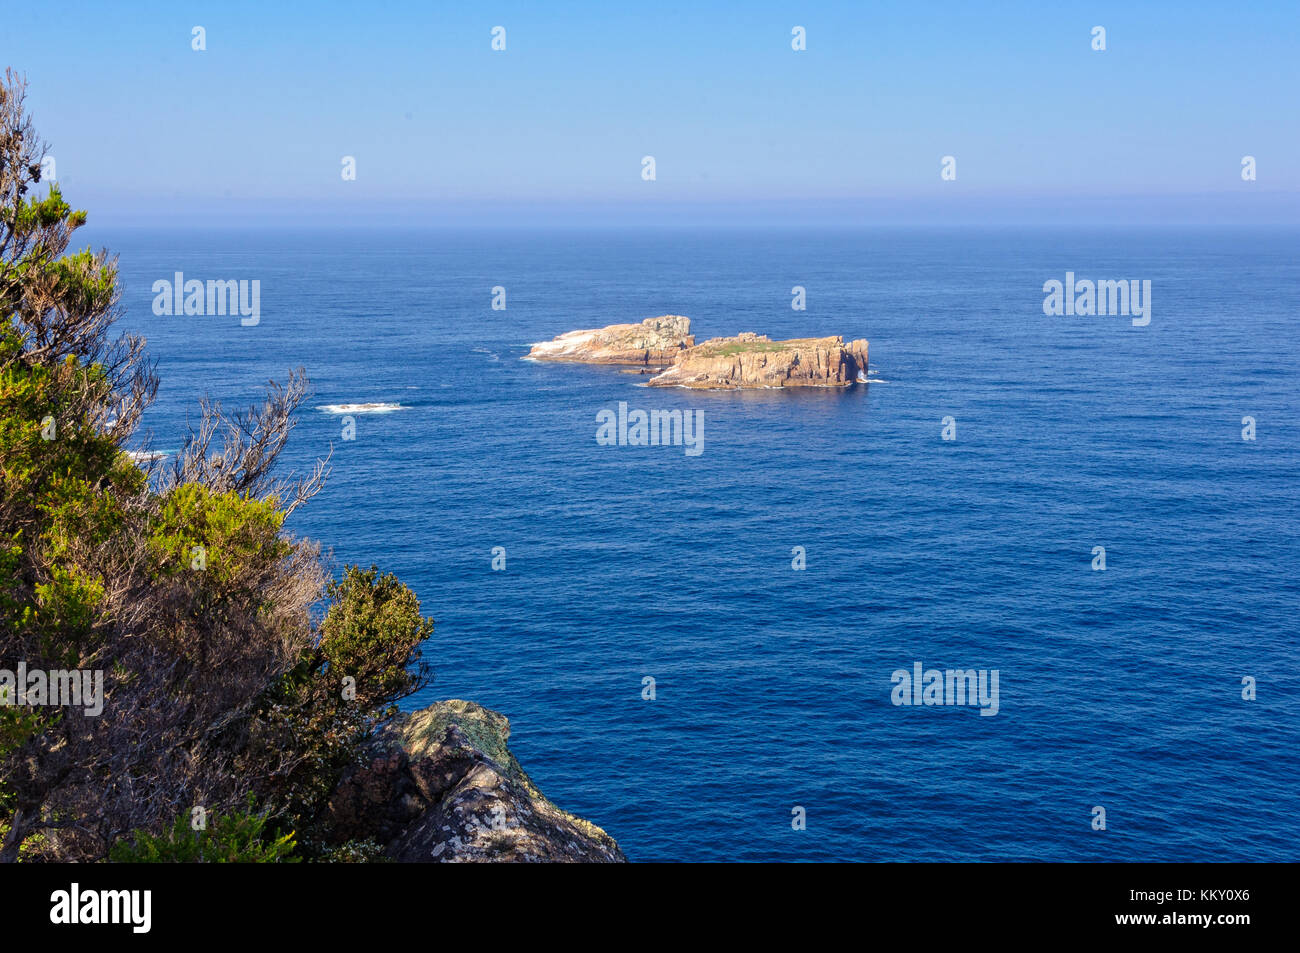 Two small rocky islands surrounded by blue water below the Cape Tourville Lighthouse in the Freycinet National Park Stock Photo